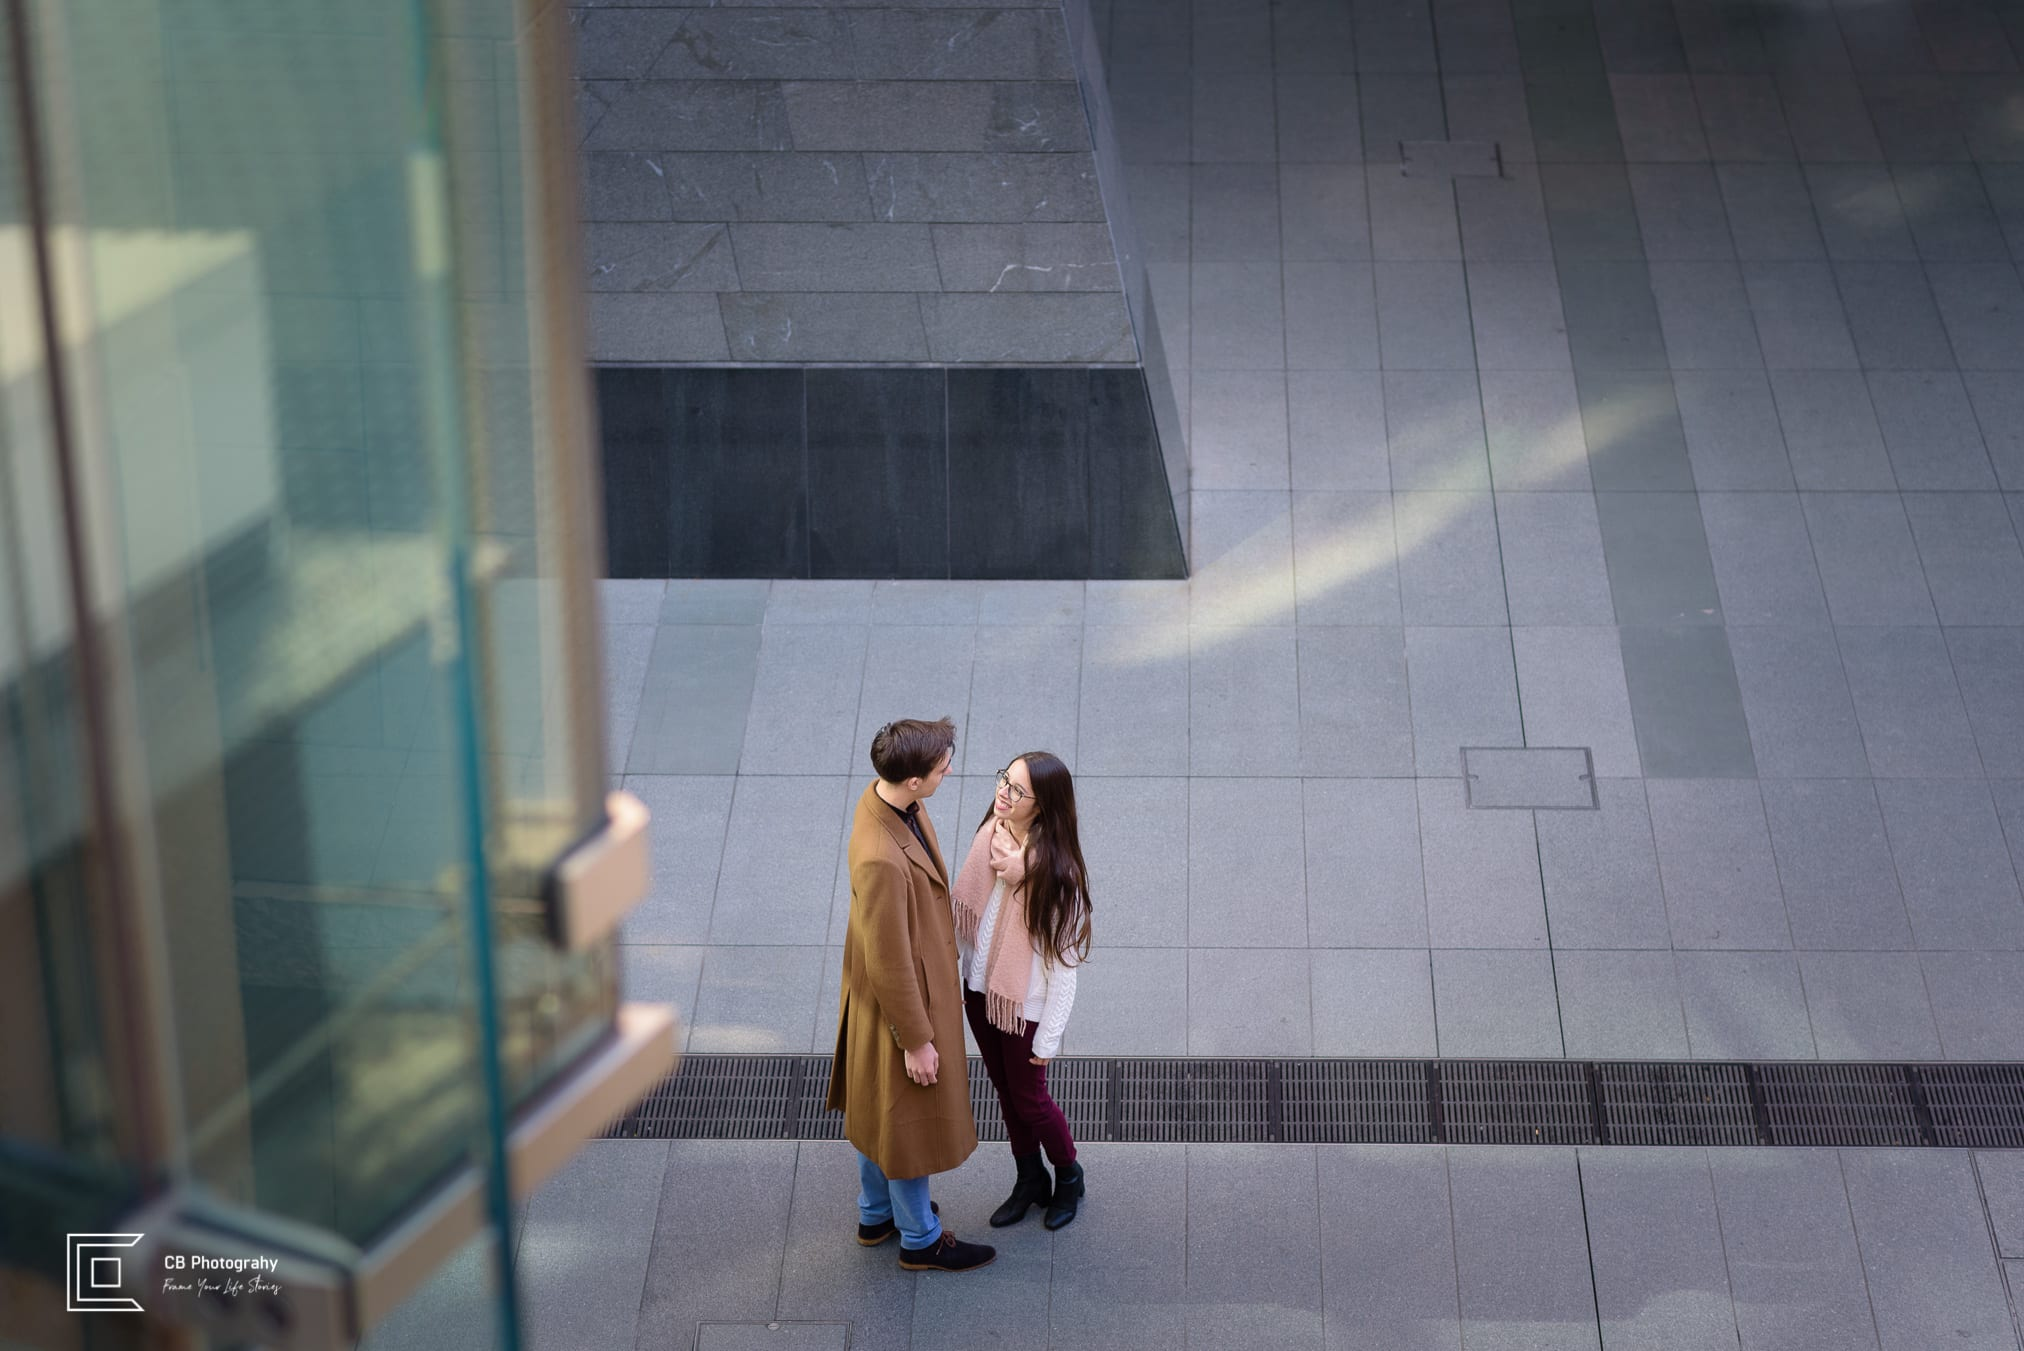 Couple portrait taken during a shoot in Roppongi Hills by the Tokyo photographer Cristian Bucur